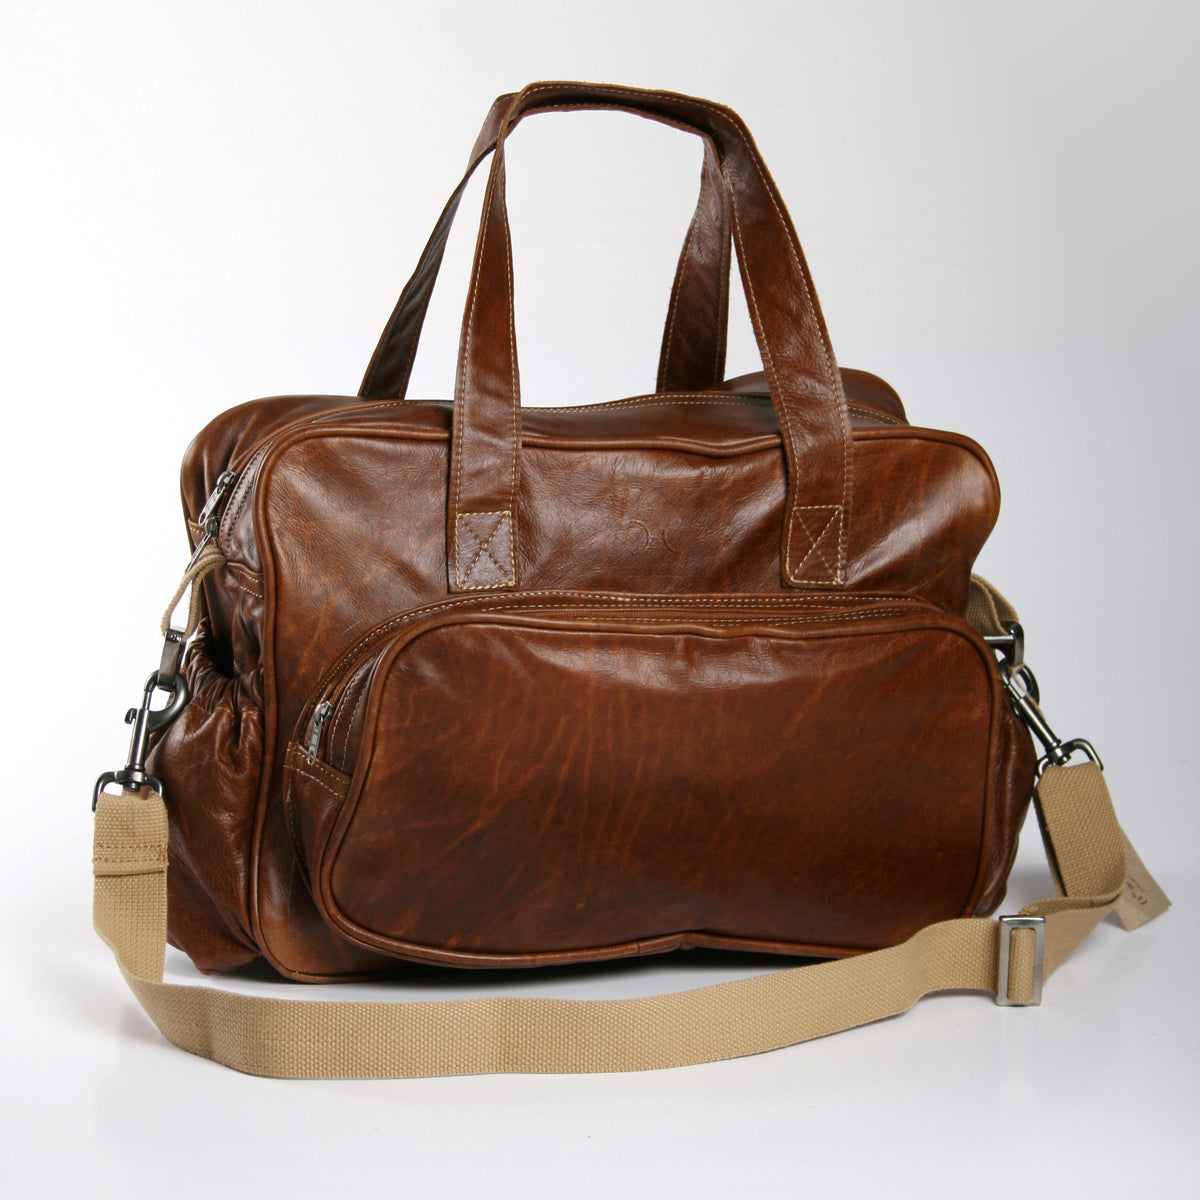 Thandana Nappy Bag - Brown - Zufrique Boutique